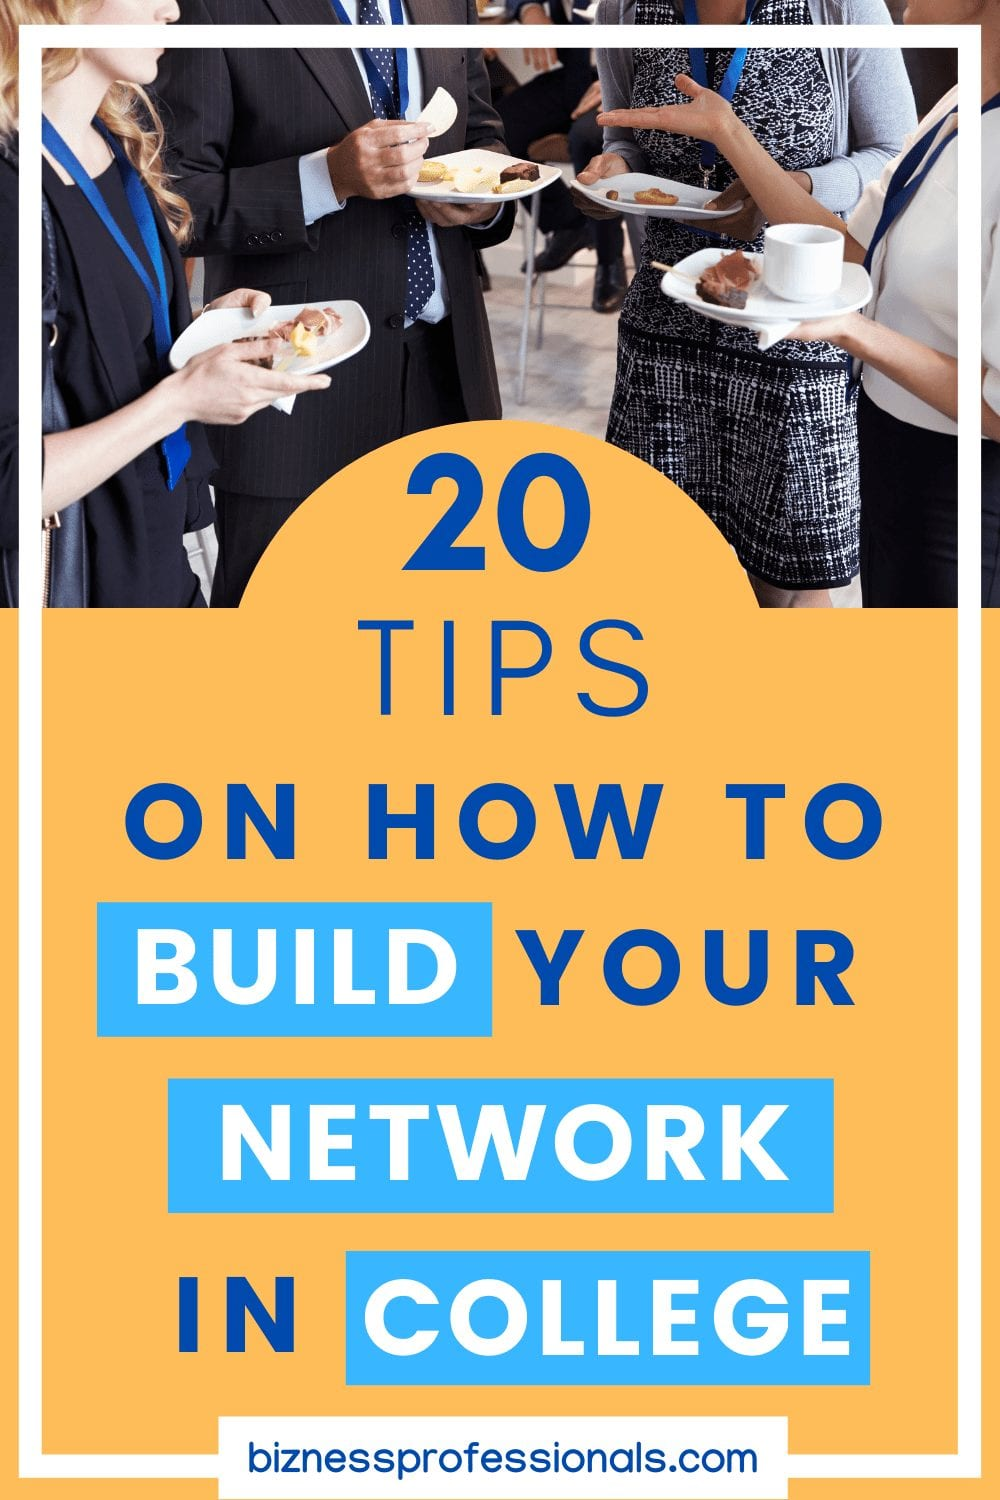 tips on how to build your network in college